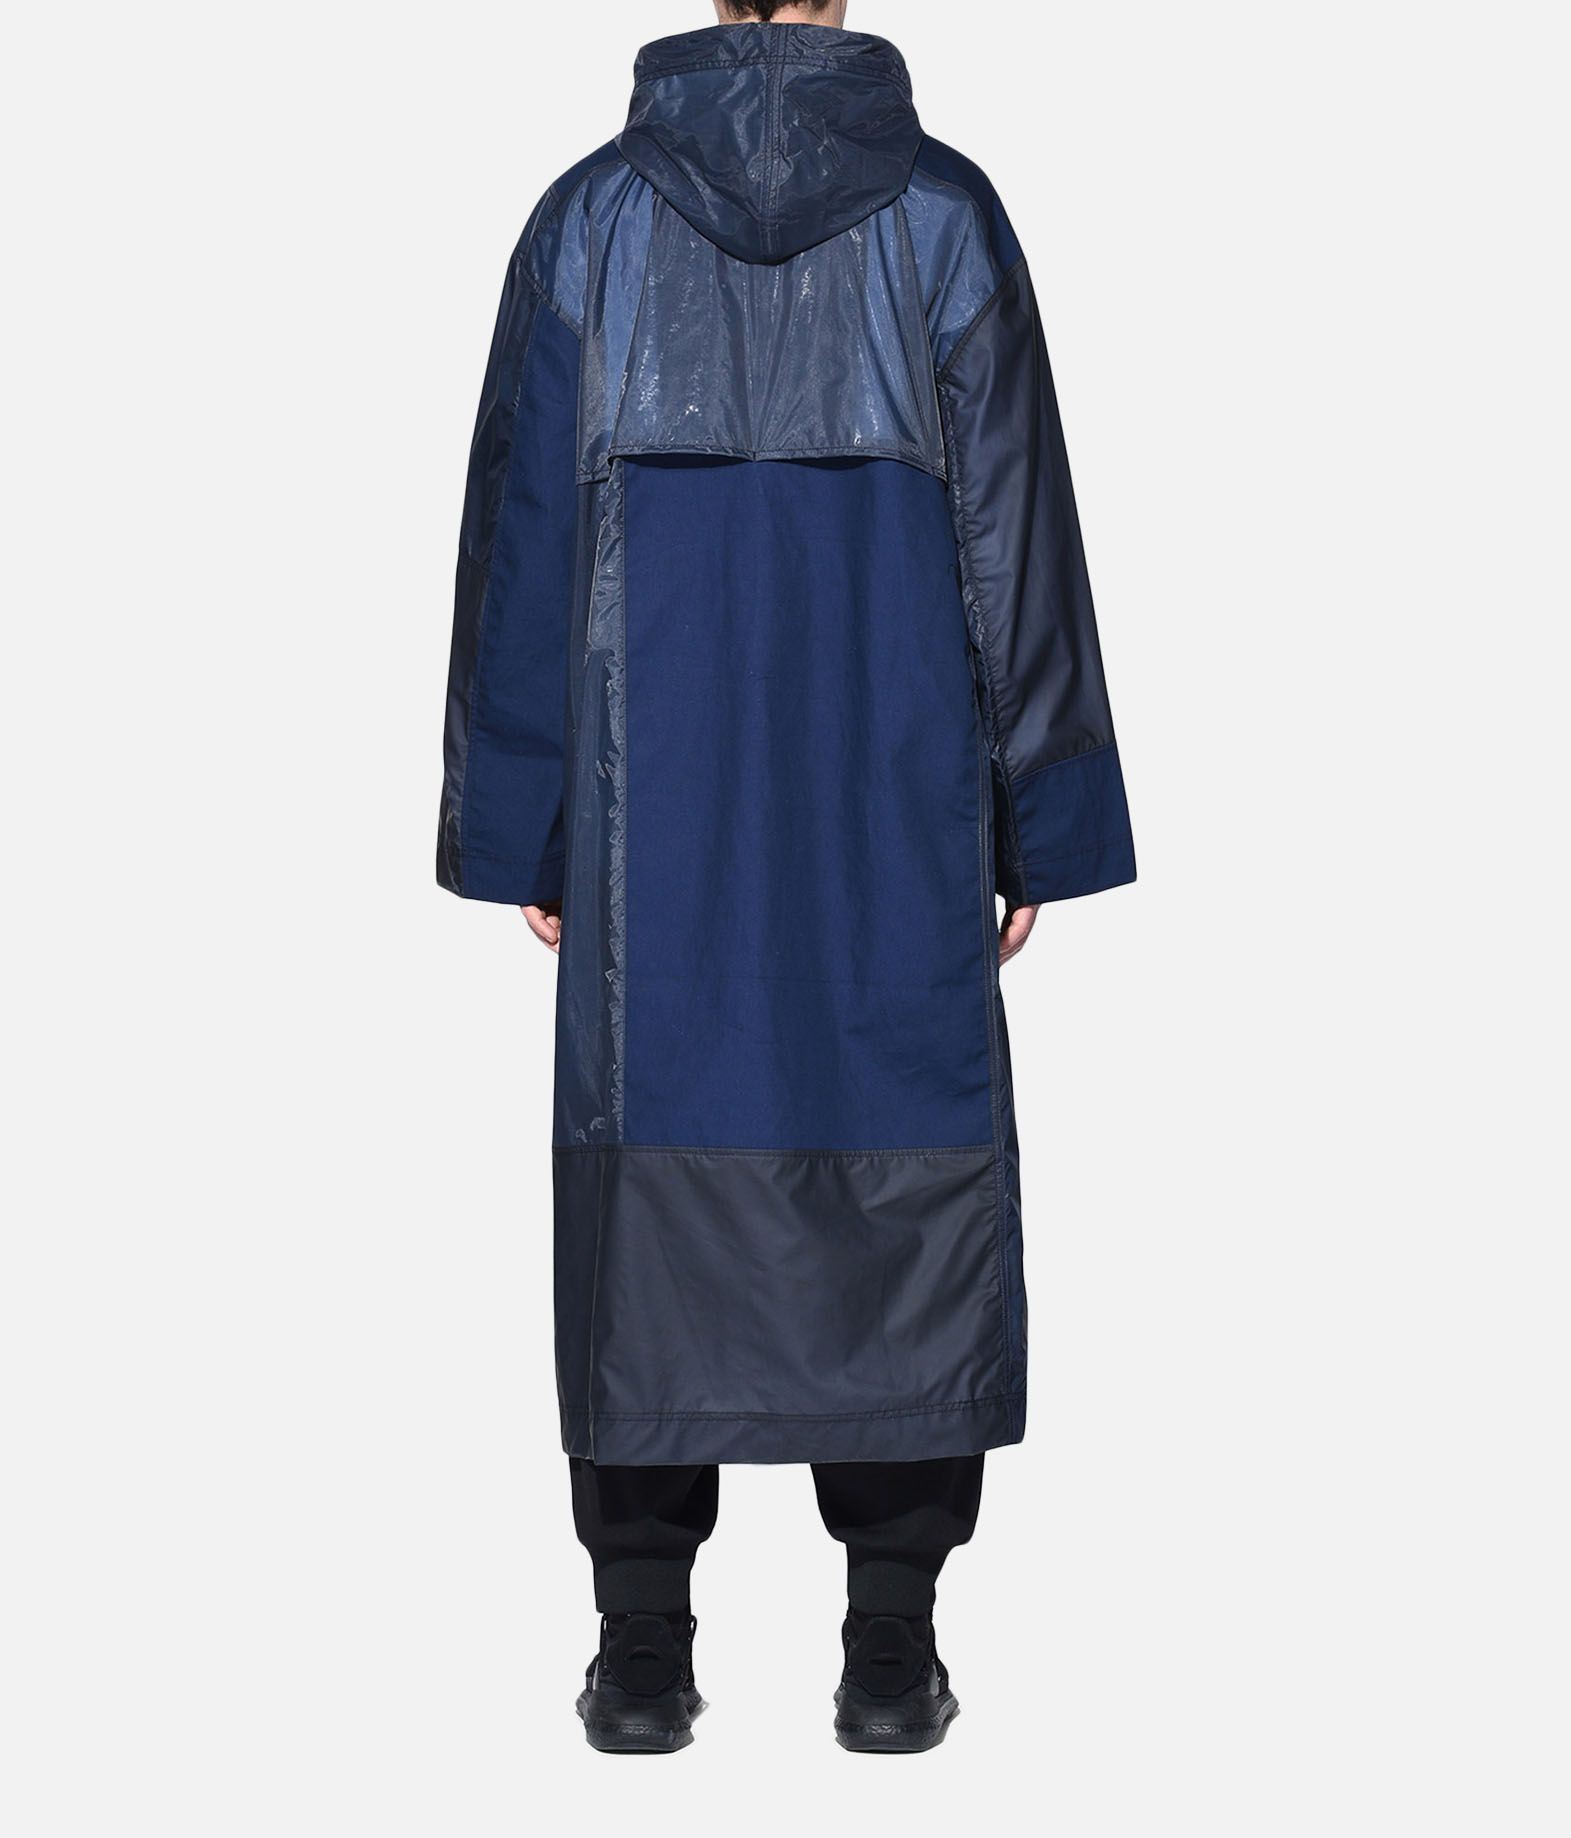 Y-3 Y-3 Patchwork Long Coat Cappotto Uomo d